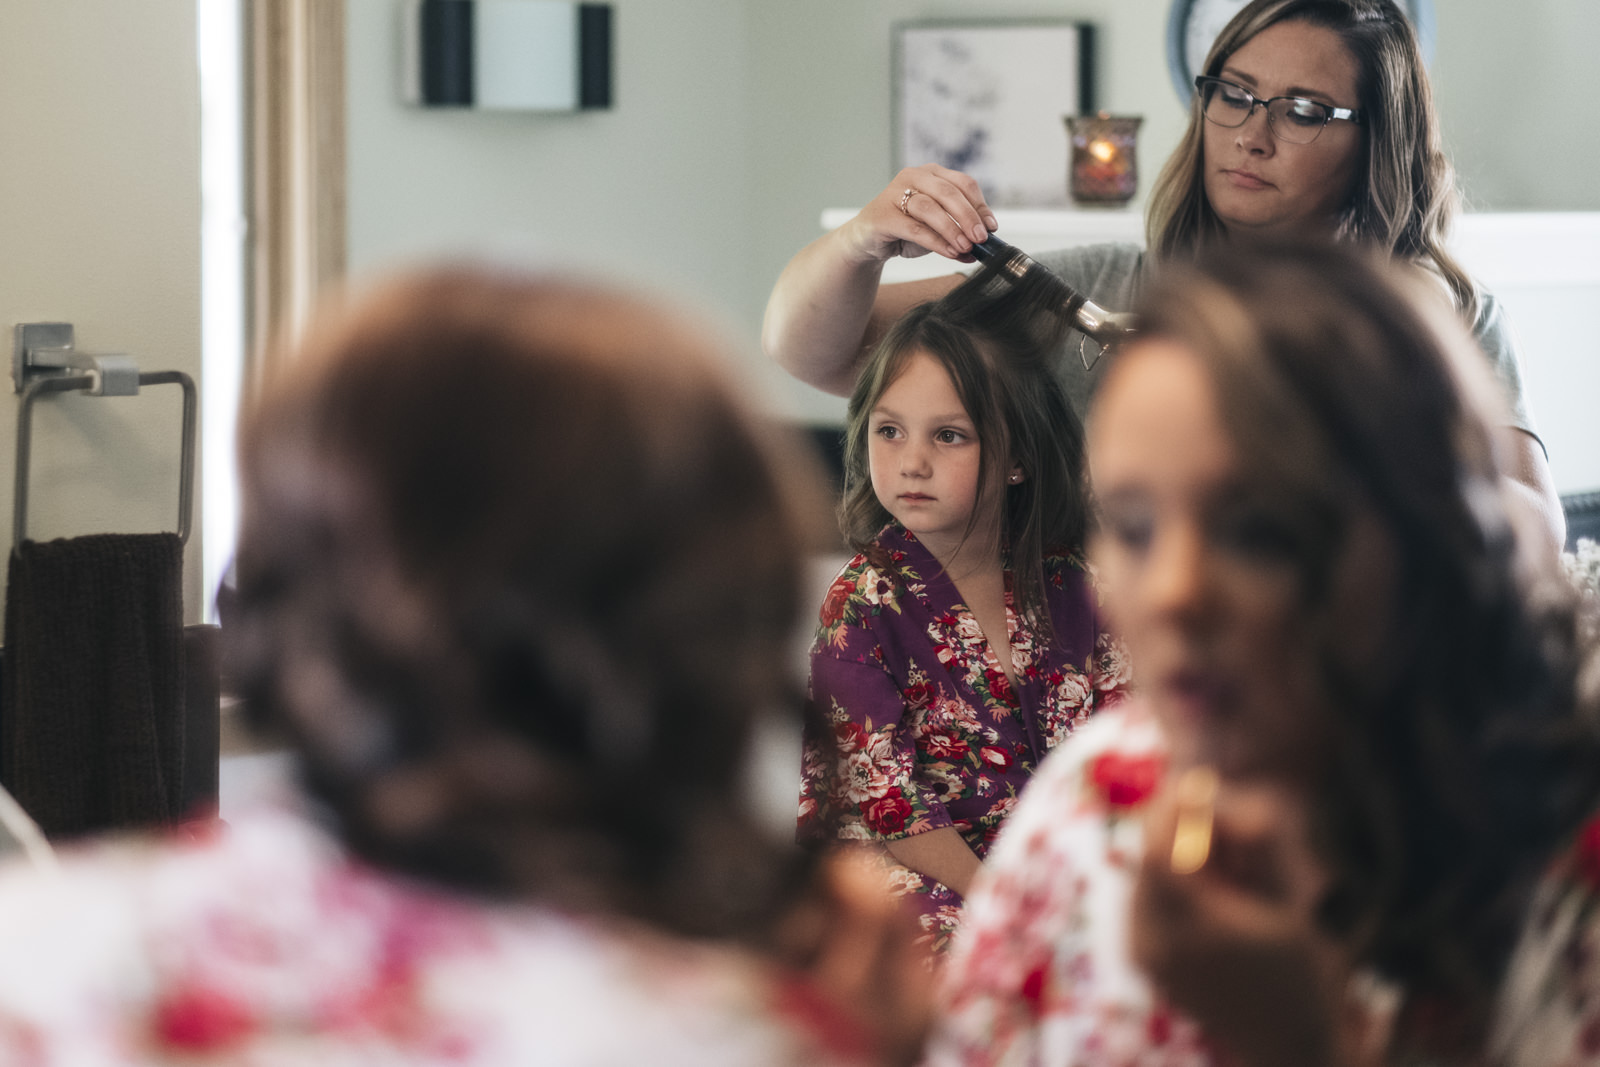 Bride's daughter getting ready for wedding day.